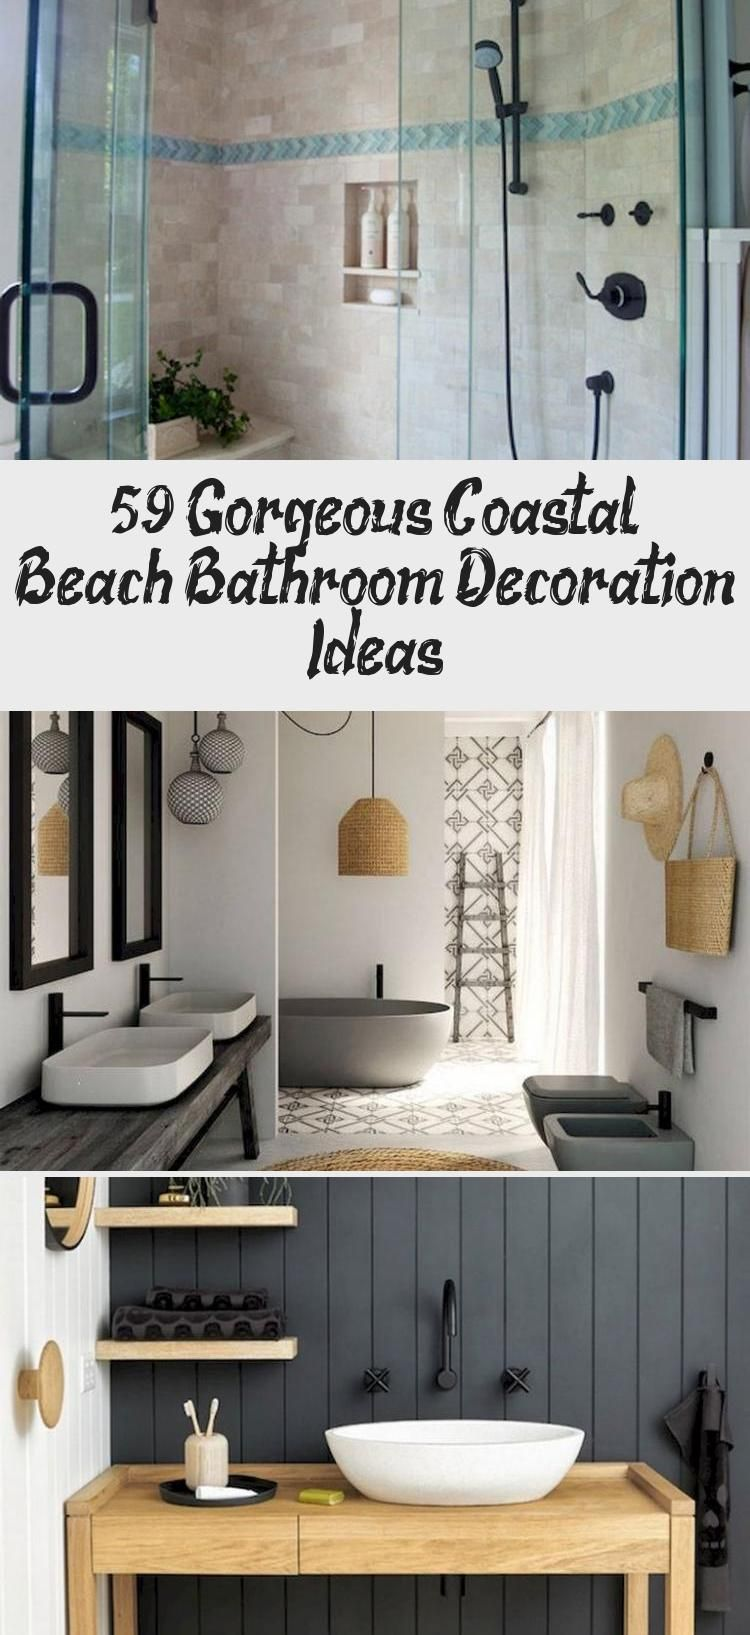 59+ Gorgeous Coastal Beach Bathroom Decoration Ideas – Decor Bathroom